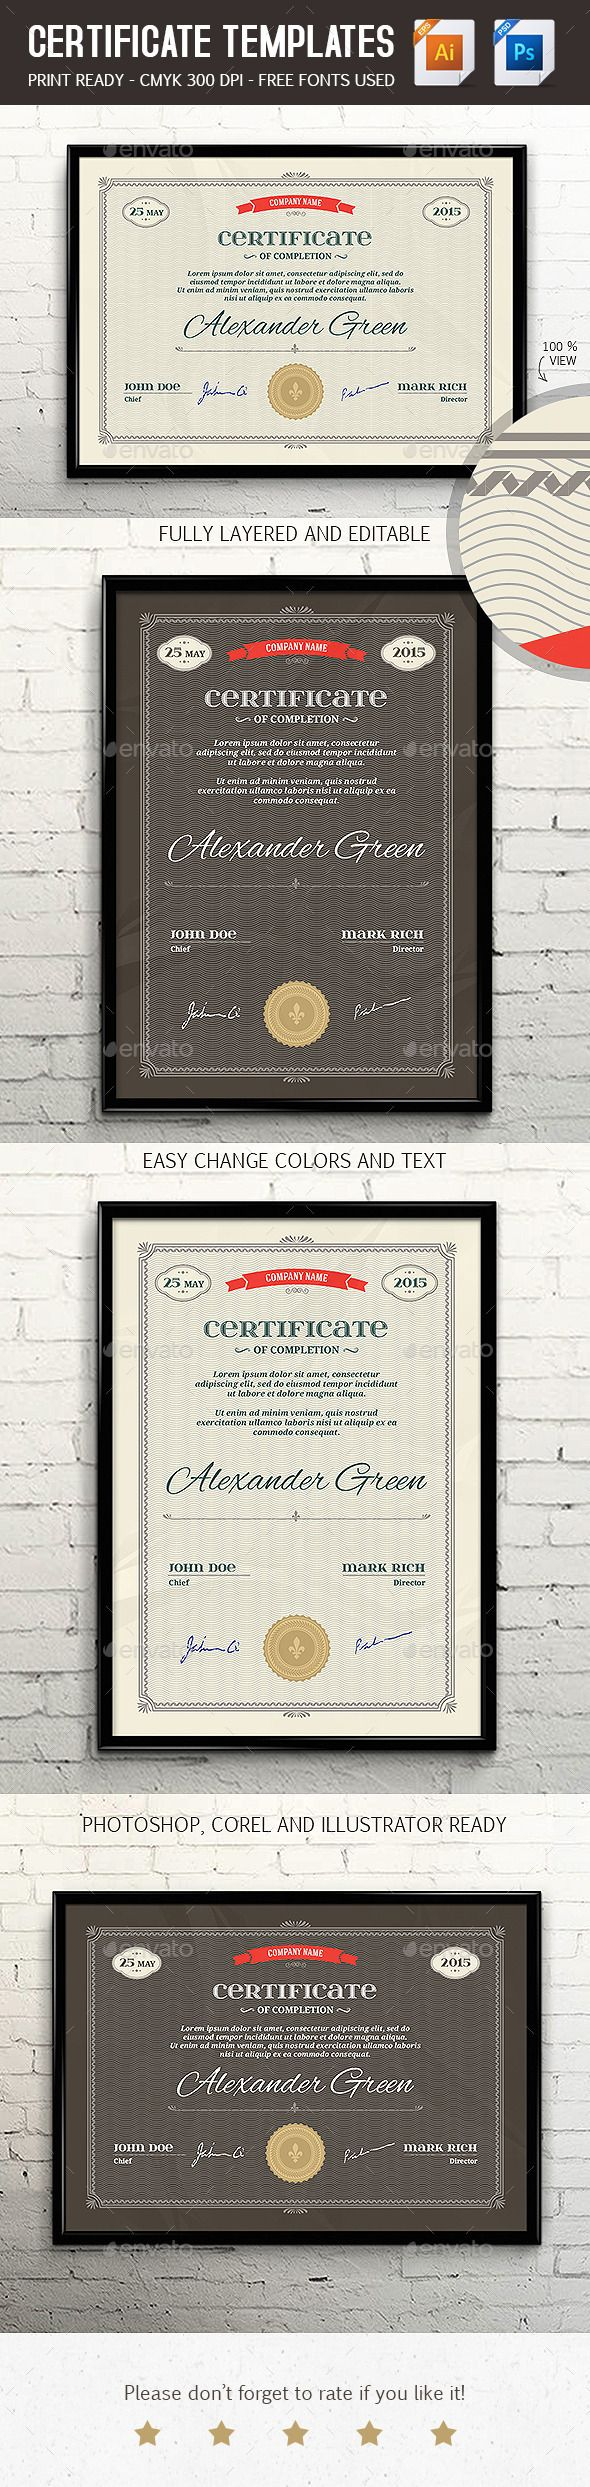 Certificate template psd eps print ready certificate template certificate template psd eps print ready certificates stationery design template certificate yadclub Images